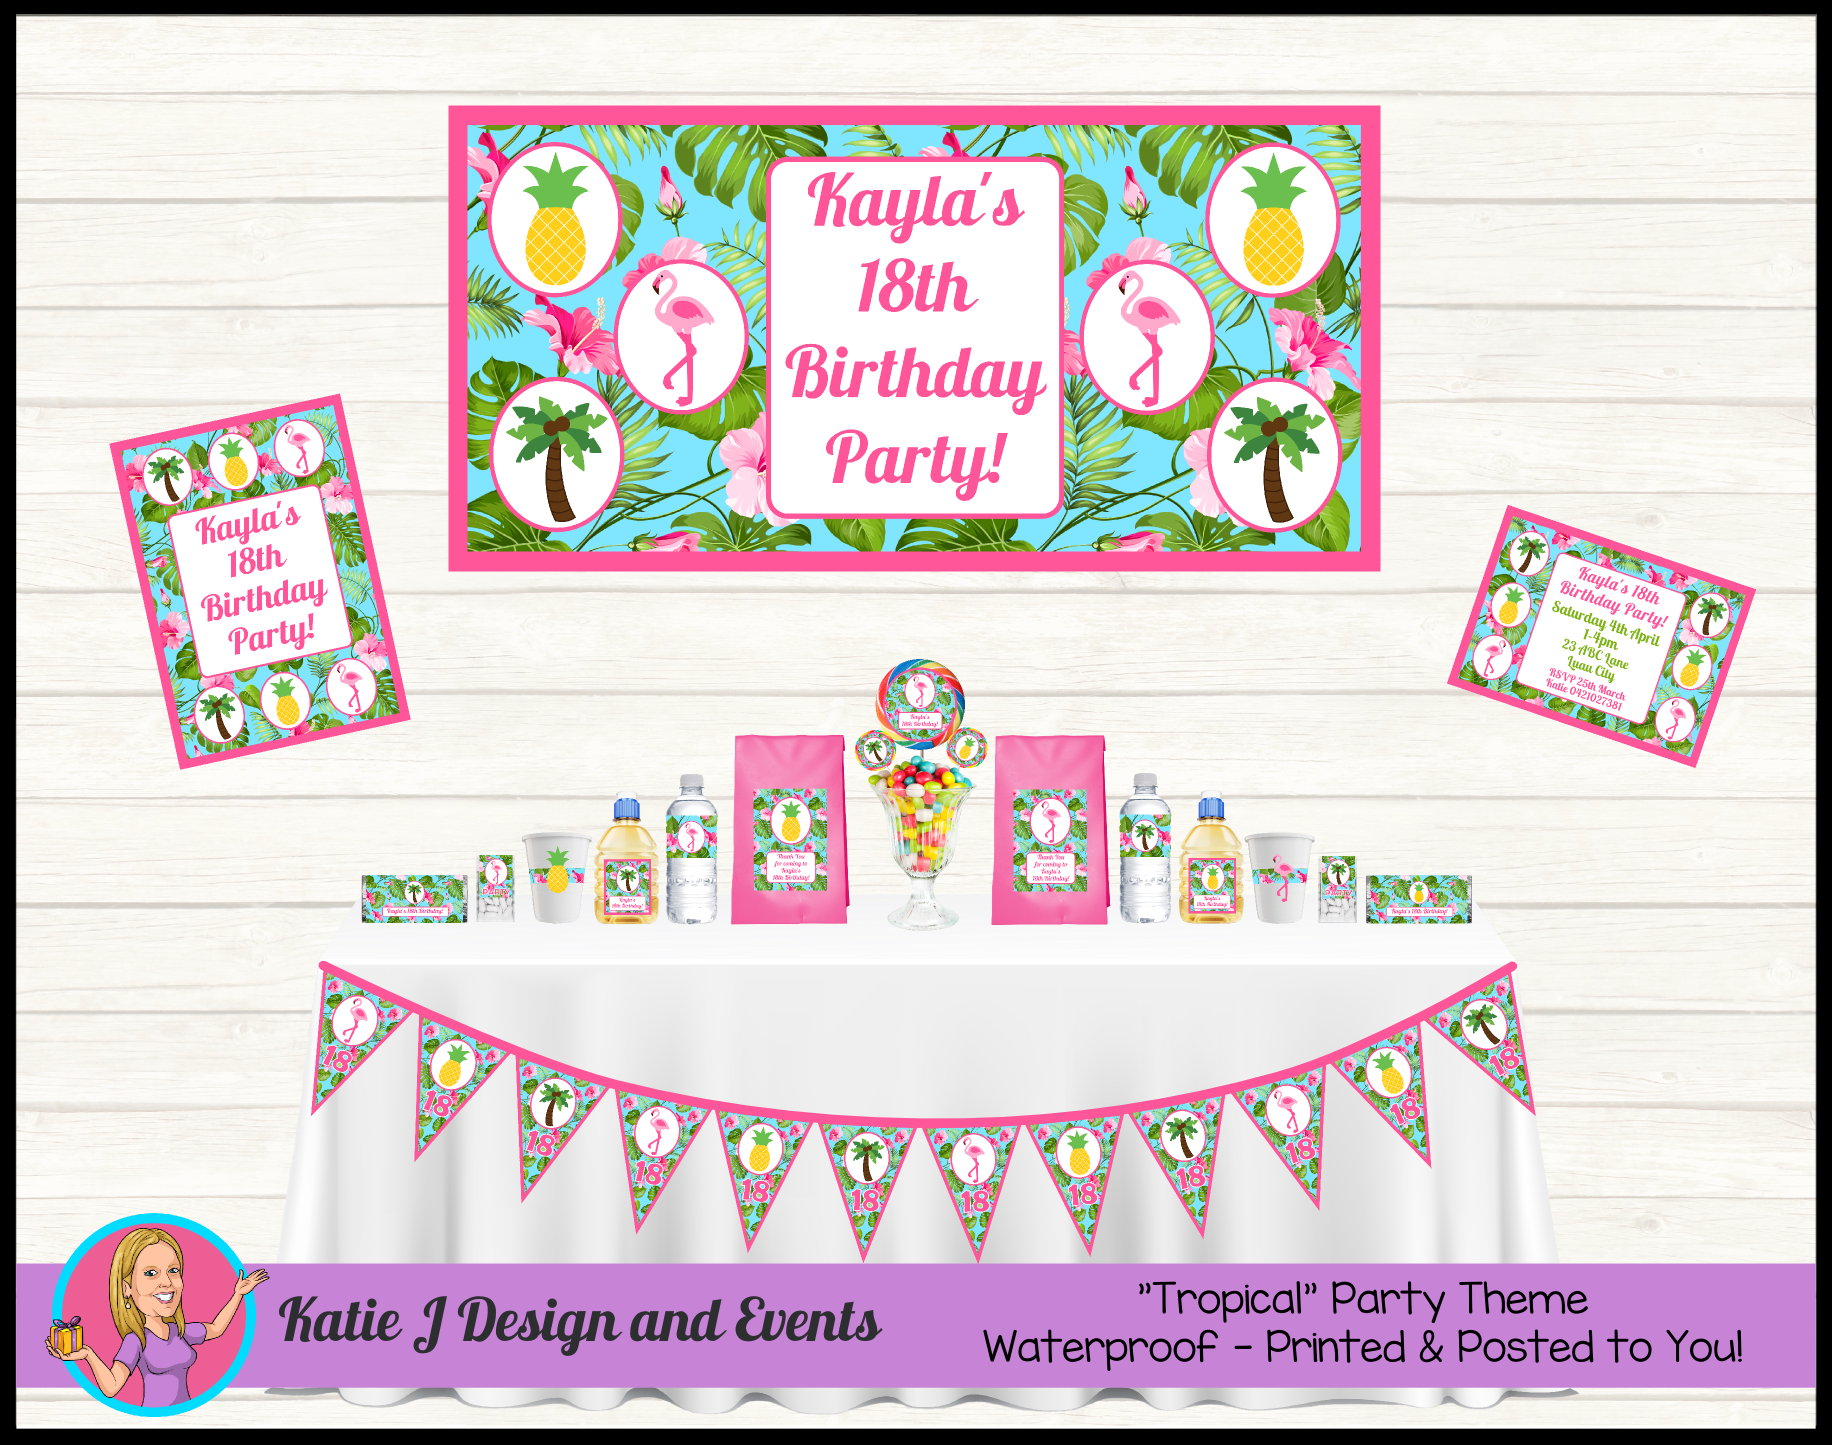 Tropical Flamingo Personalised Birthday Party Decorations Supplies Packs Shop Online Australia Banners Bunting Wall Display Cupcake